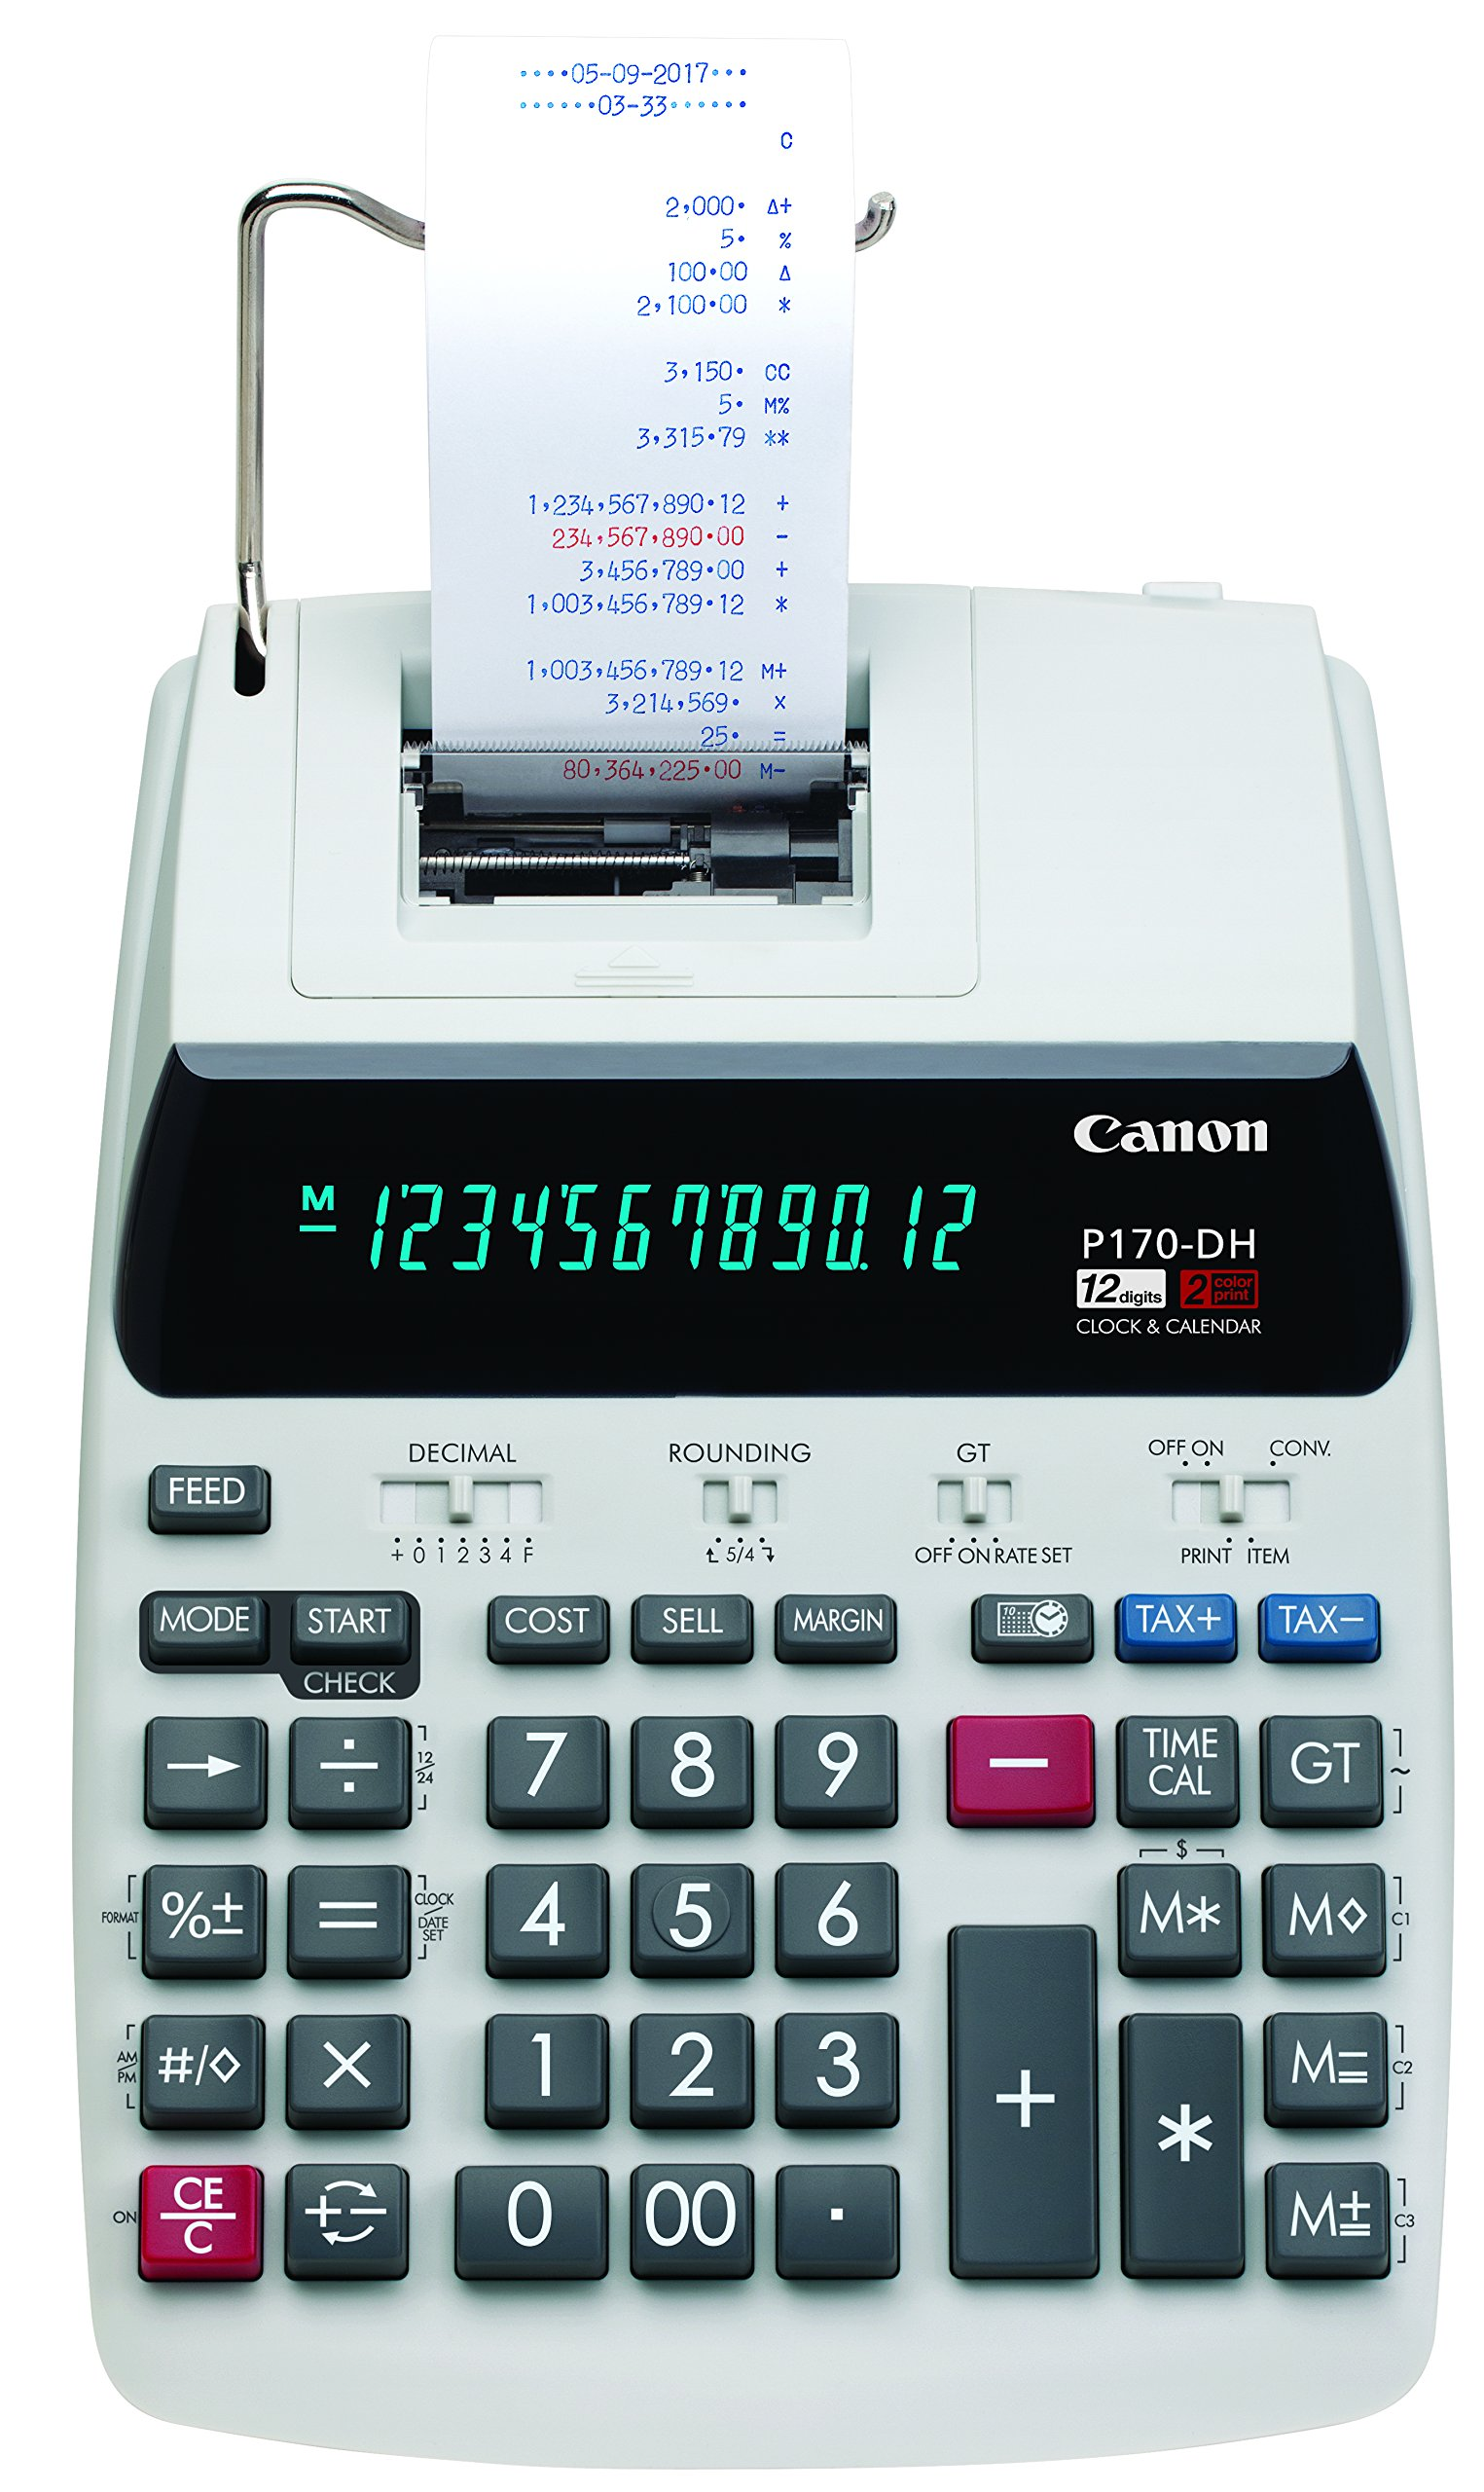 Canon Office Products 2204C001 Canon P170-DH-3 Desktop Printing Calculator with Currency Conversion, Clock & Calendar, and Time Calculation by Canon